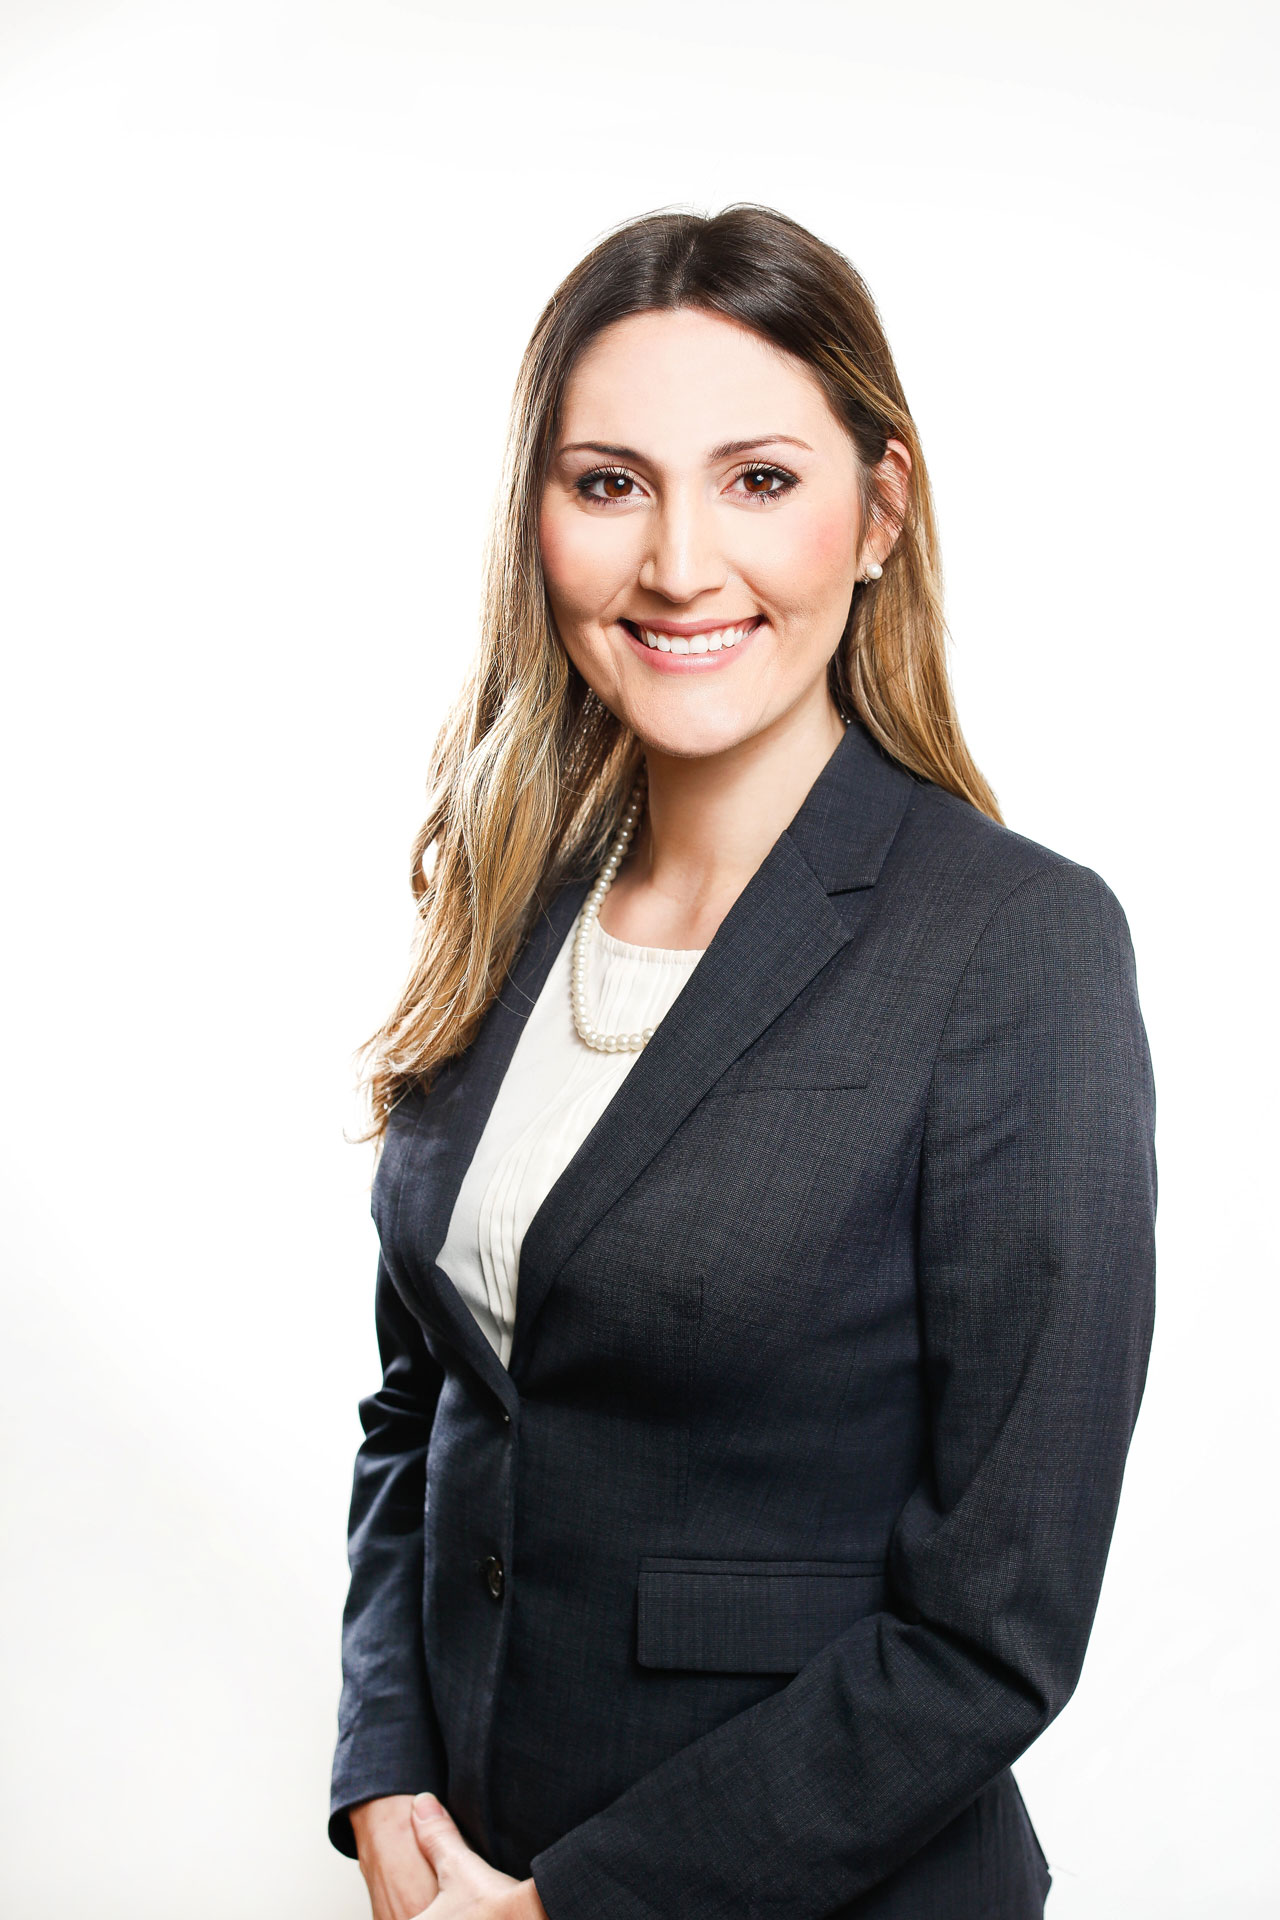 Patricia Beasley Joins the Law Firm of Fuerst, Carrier & Ogden as Partner